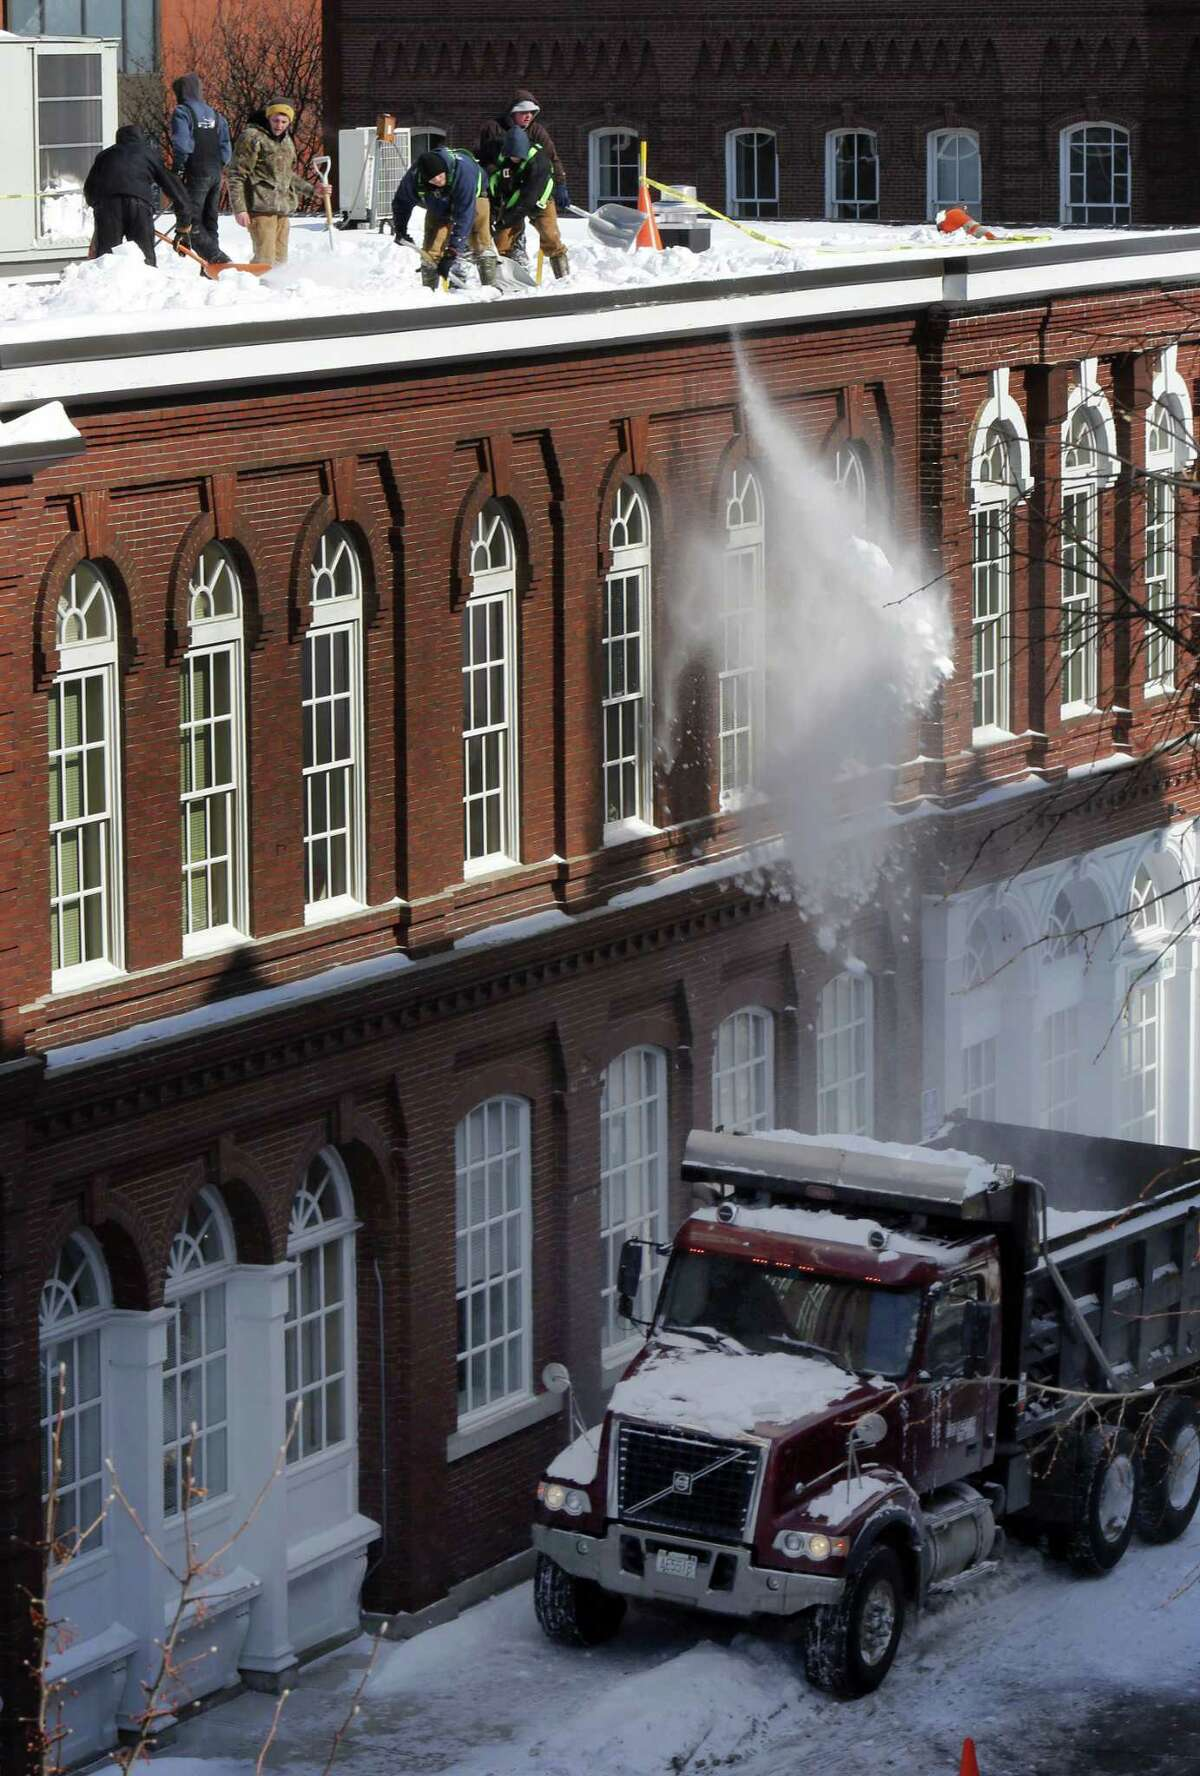 Crews continue to remove snow from roofs Friday, Feb. 20, 2015, in downtown Concord, N.H. The National Weather Service said as of Friday, it's been the coldest February on record for Concord, but that could change with a bit of a warm-up expected on Sunday. (AP Photo/Jim Cole)